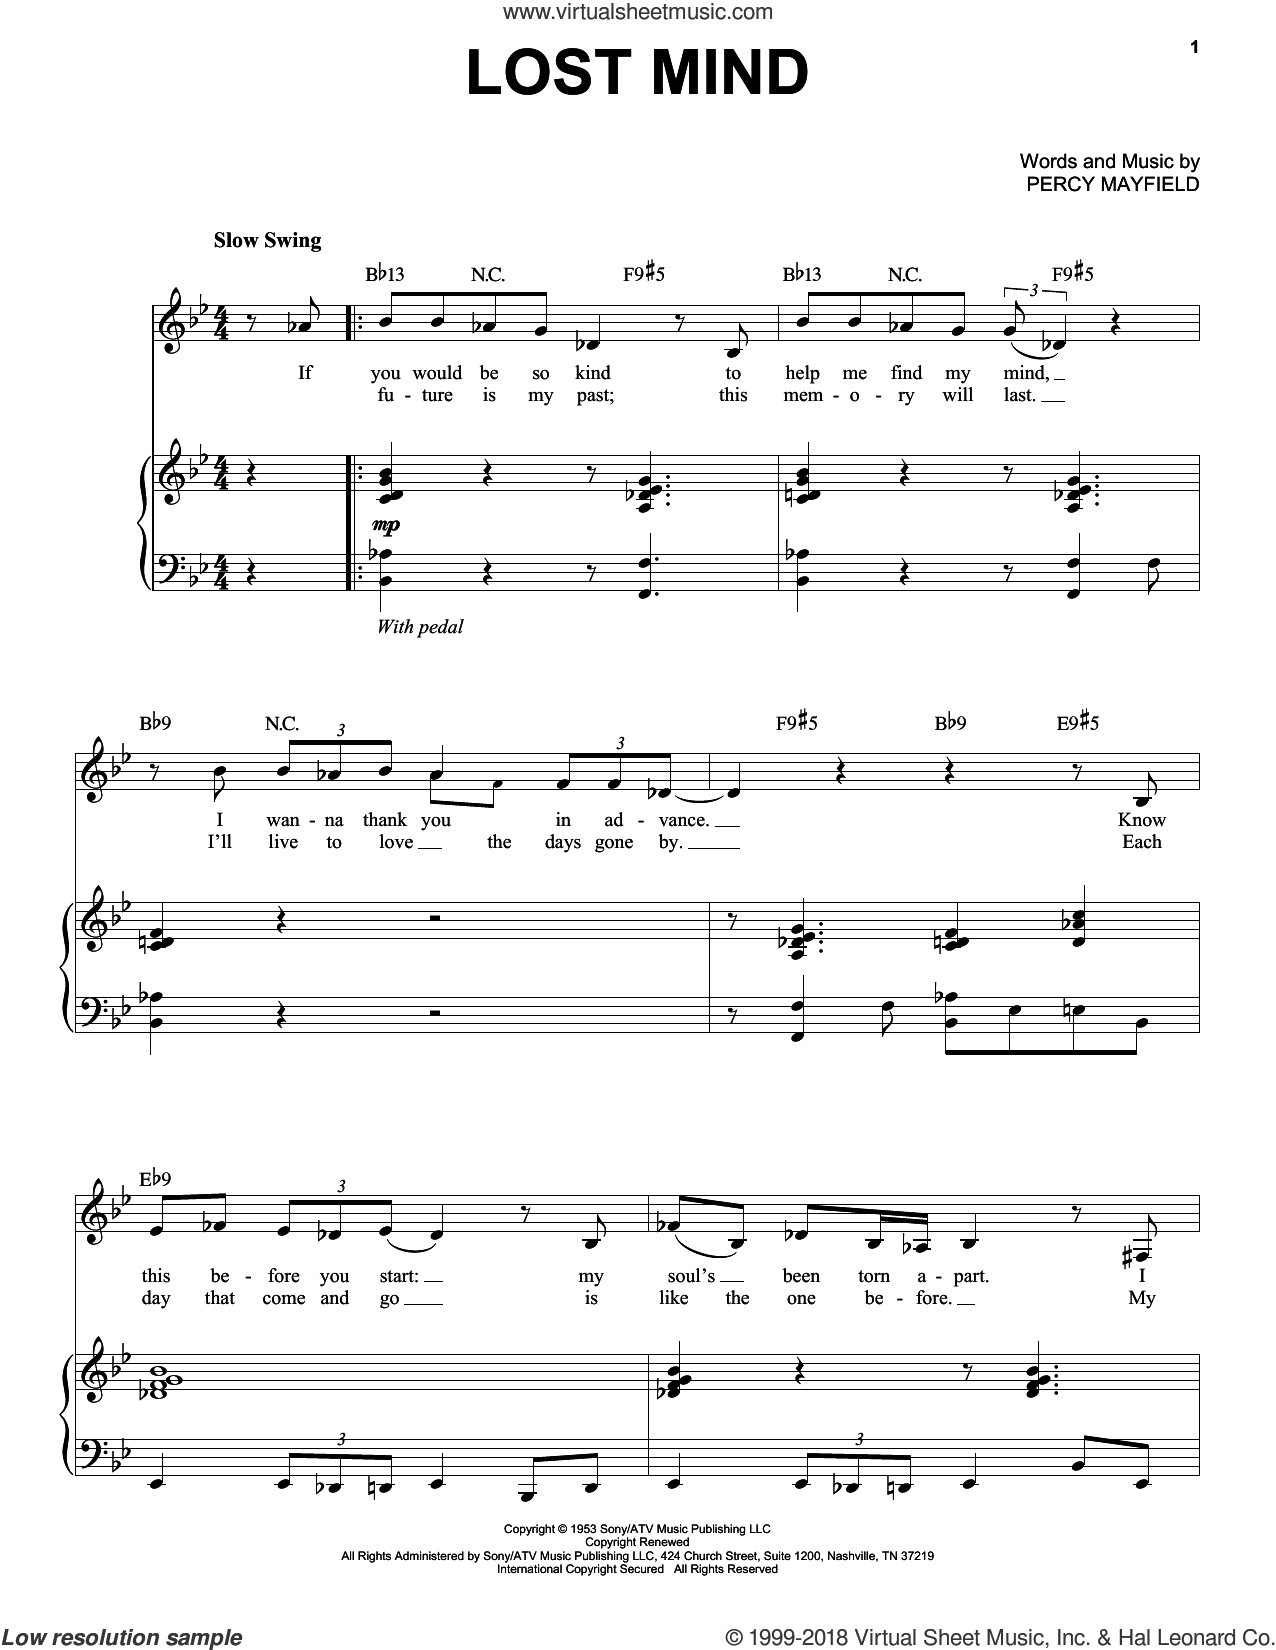 Lost Mind sheet music for voice and piano by Percy Mayfield, Diana Krall and Mose Allison. Score Image Preview.